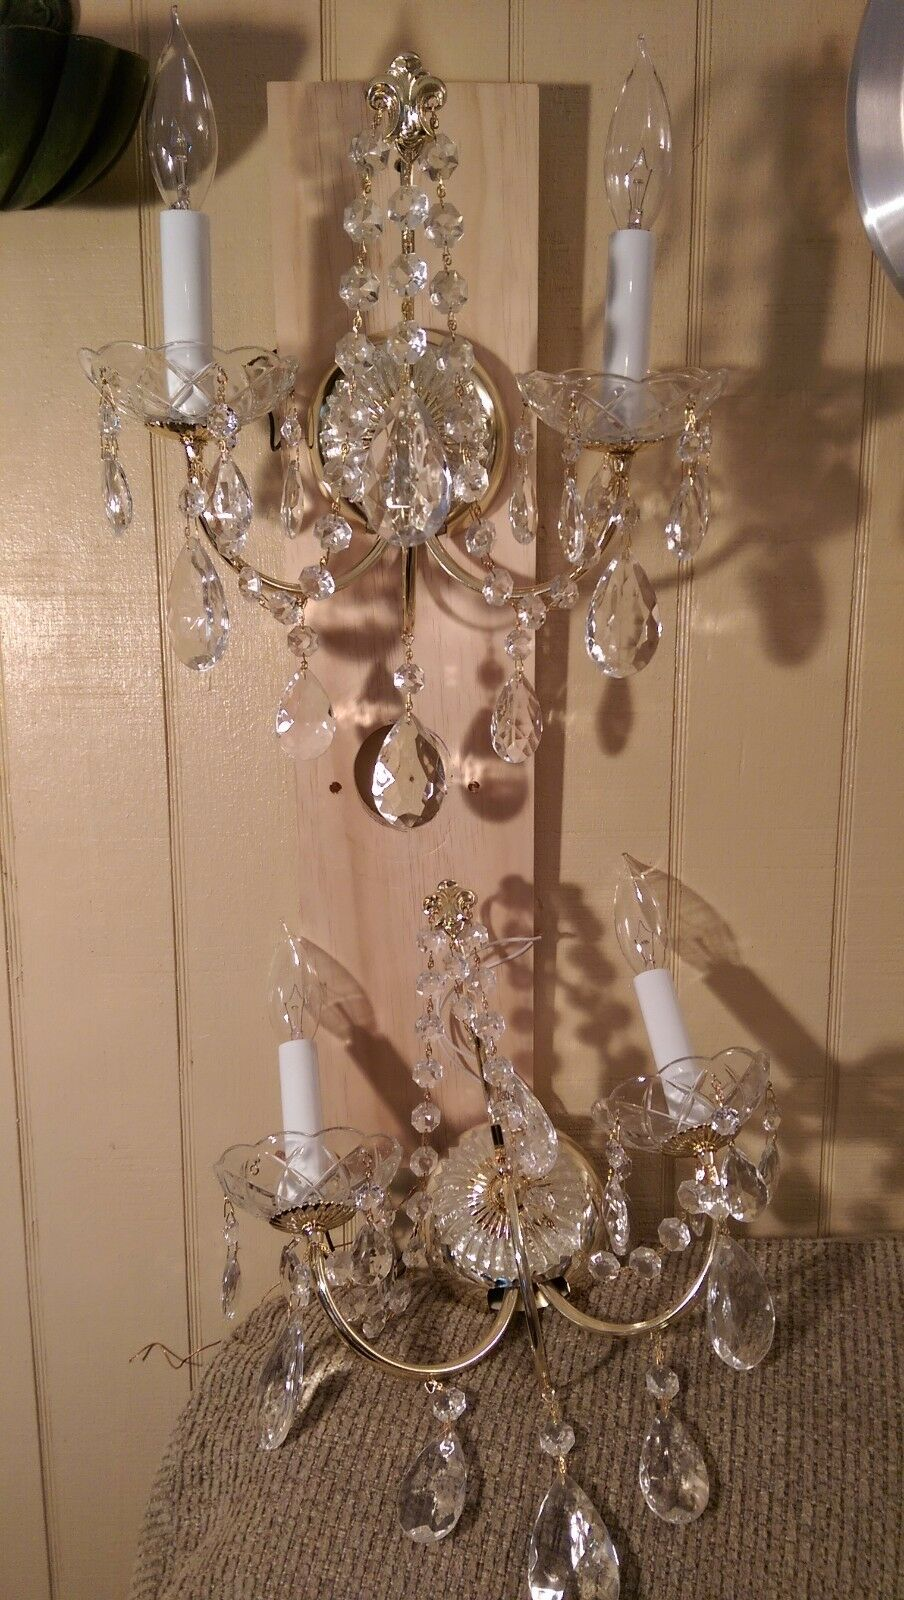 Pair of Awesome Crystal 2 Light Sconce